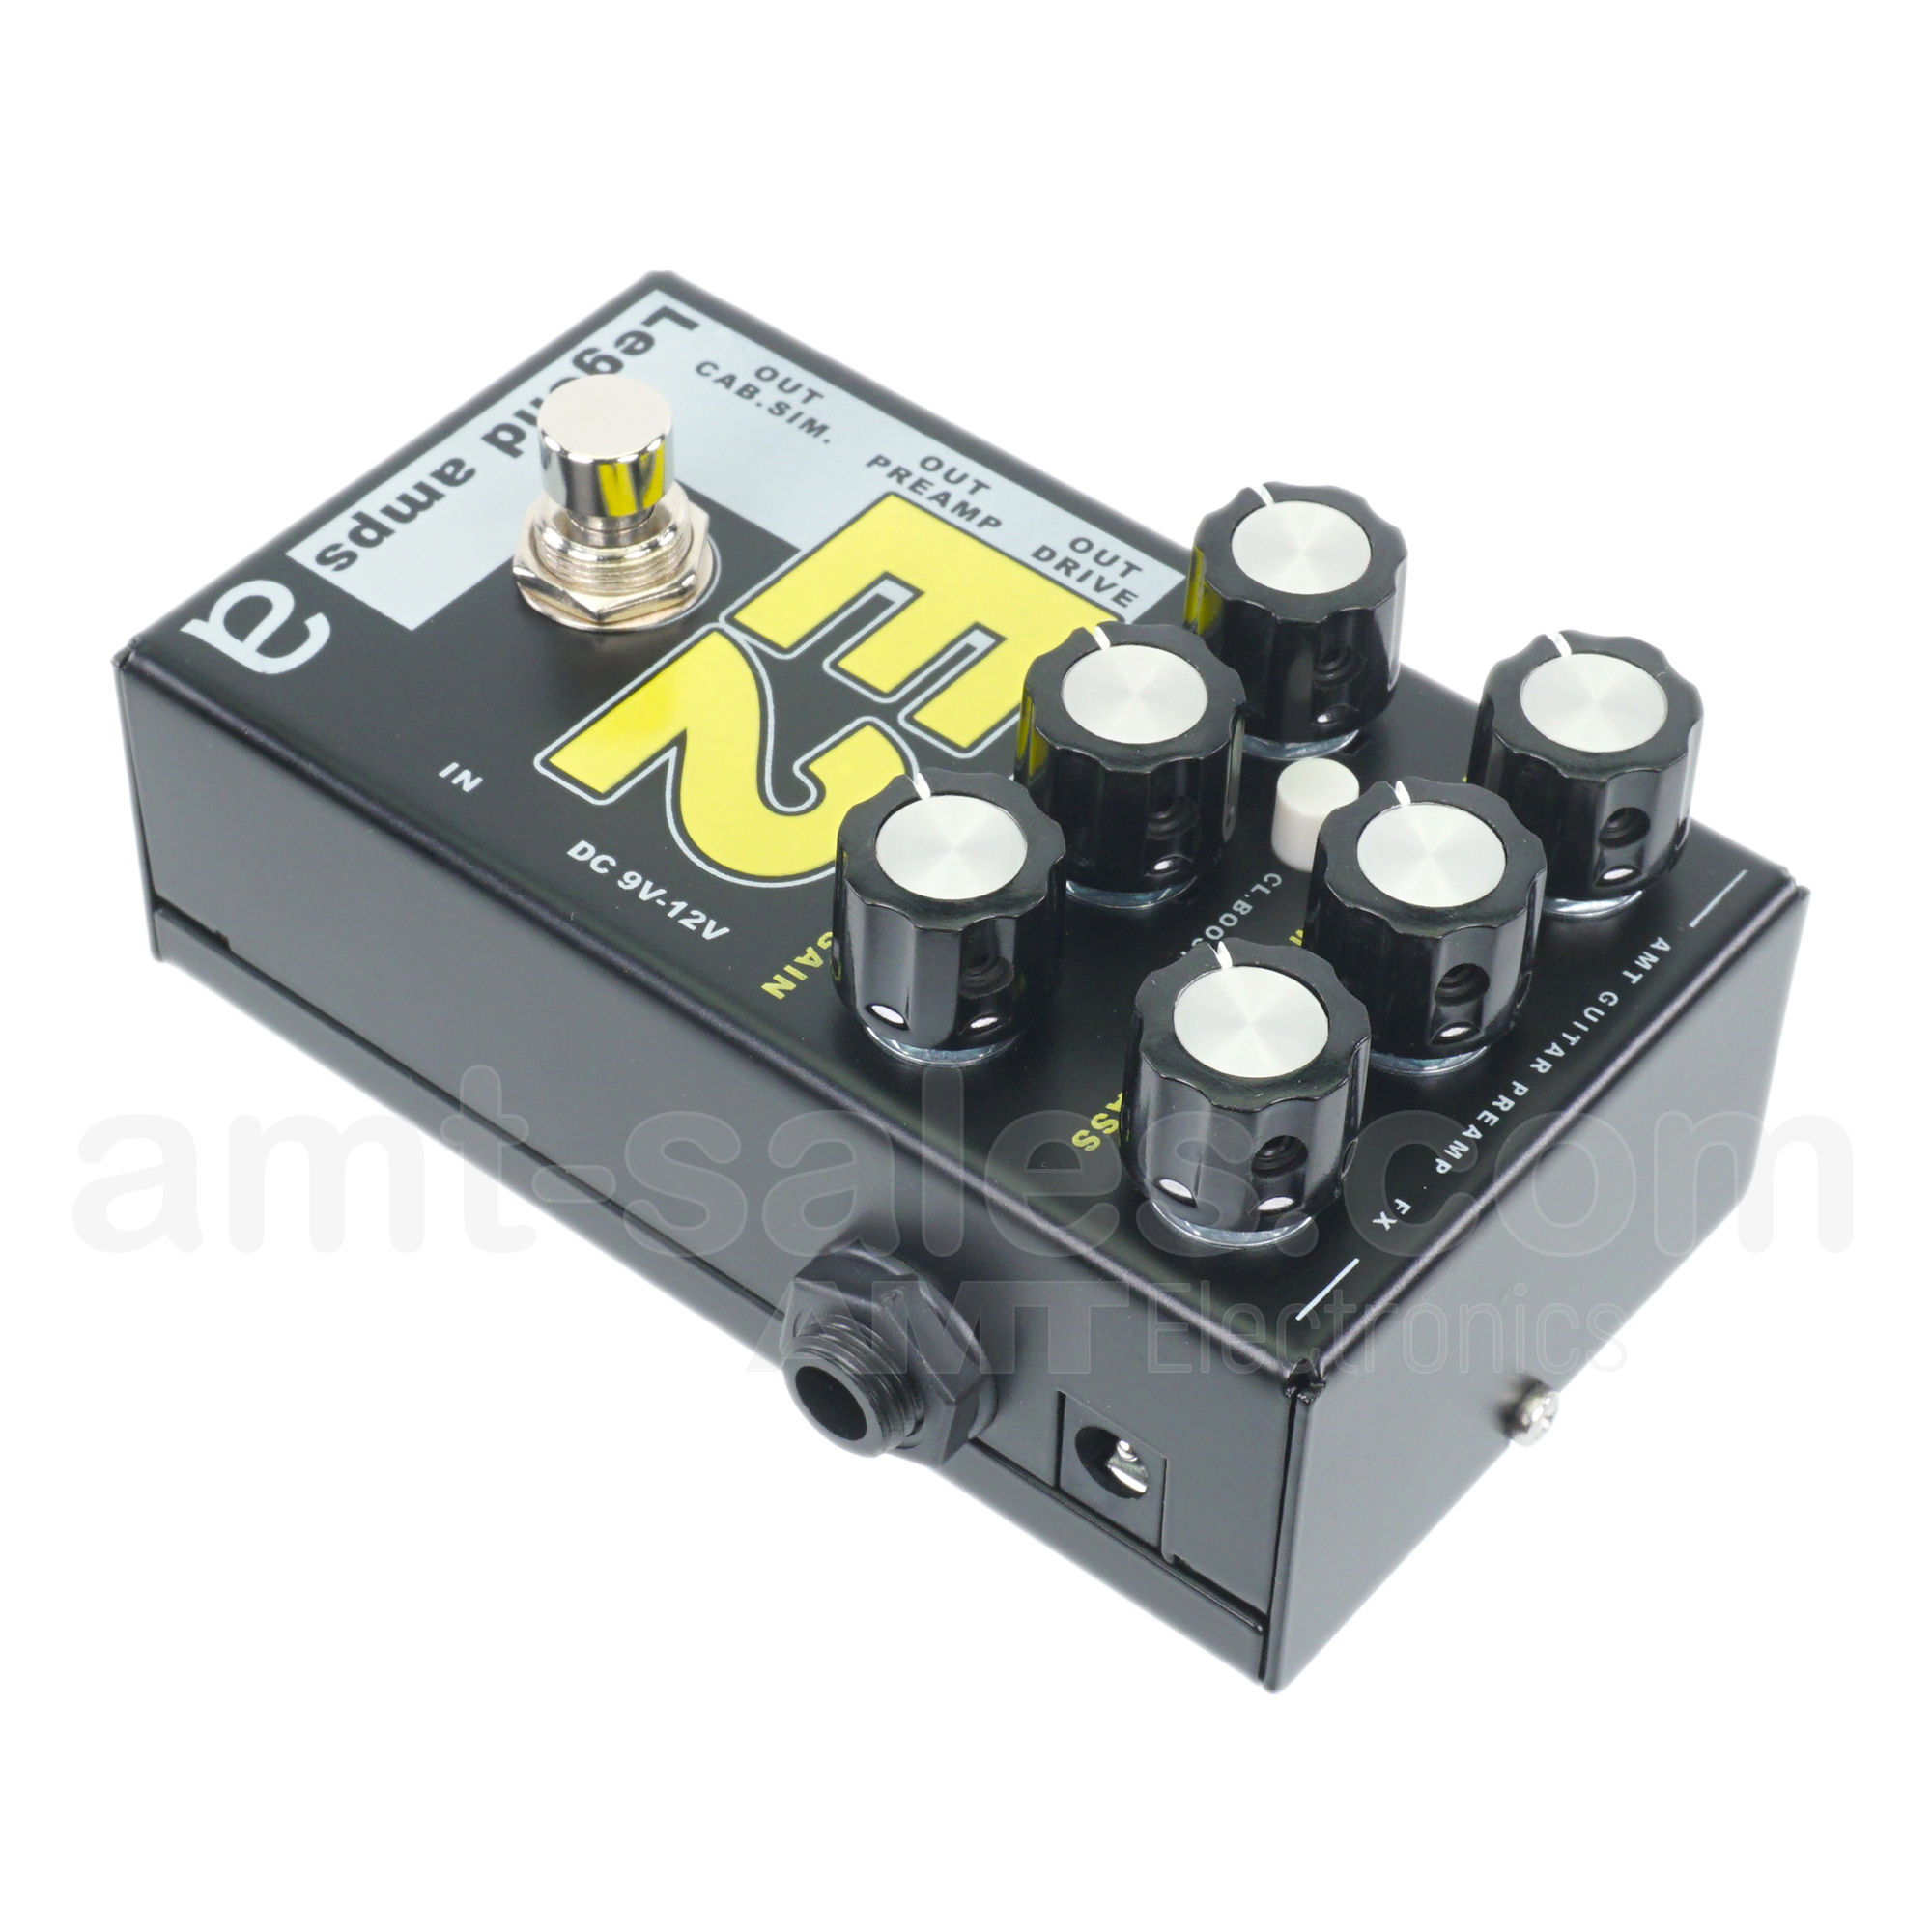 AMT E2 - 2 channels guitar preamp/distortion pedal (Engl)